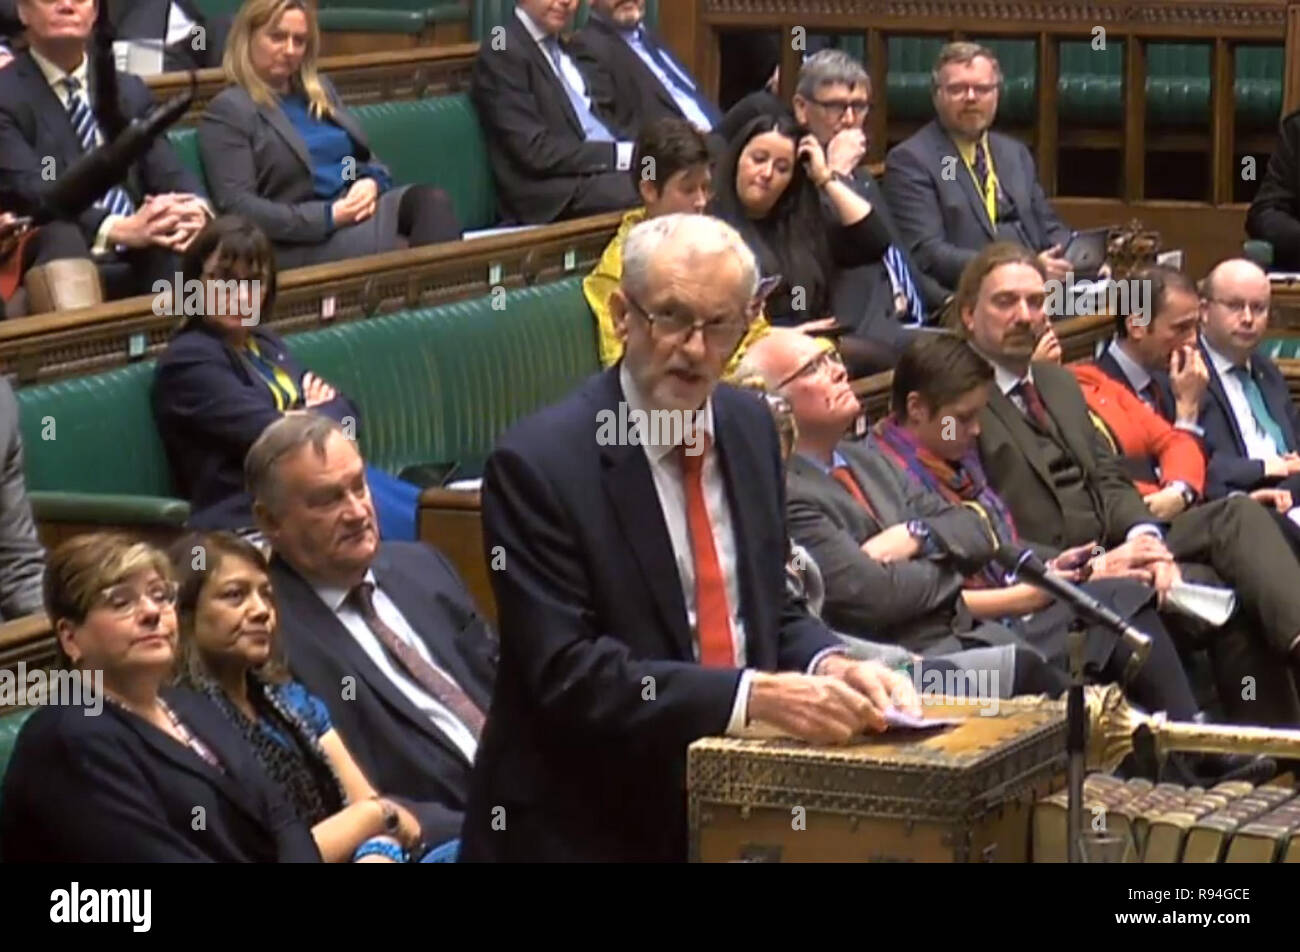 Labour Leader Jeremy Corbyn Makes A Statement In The House Of